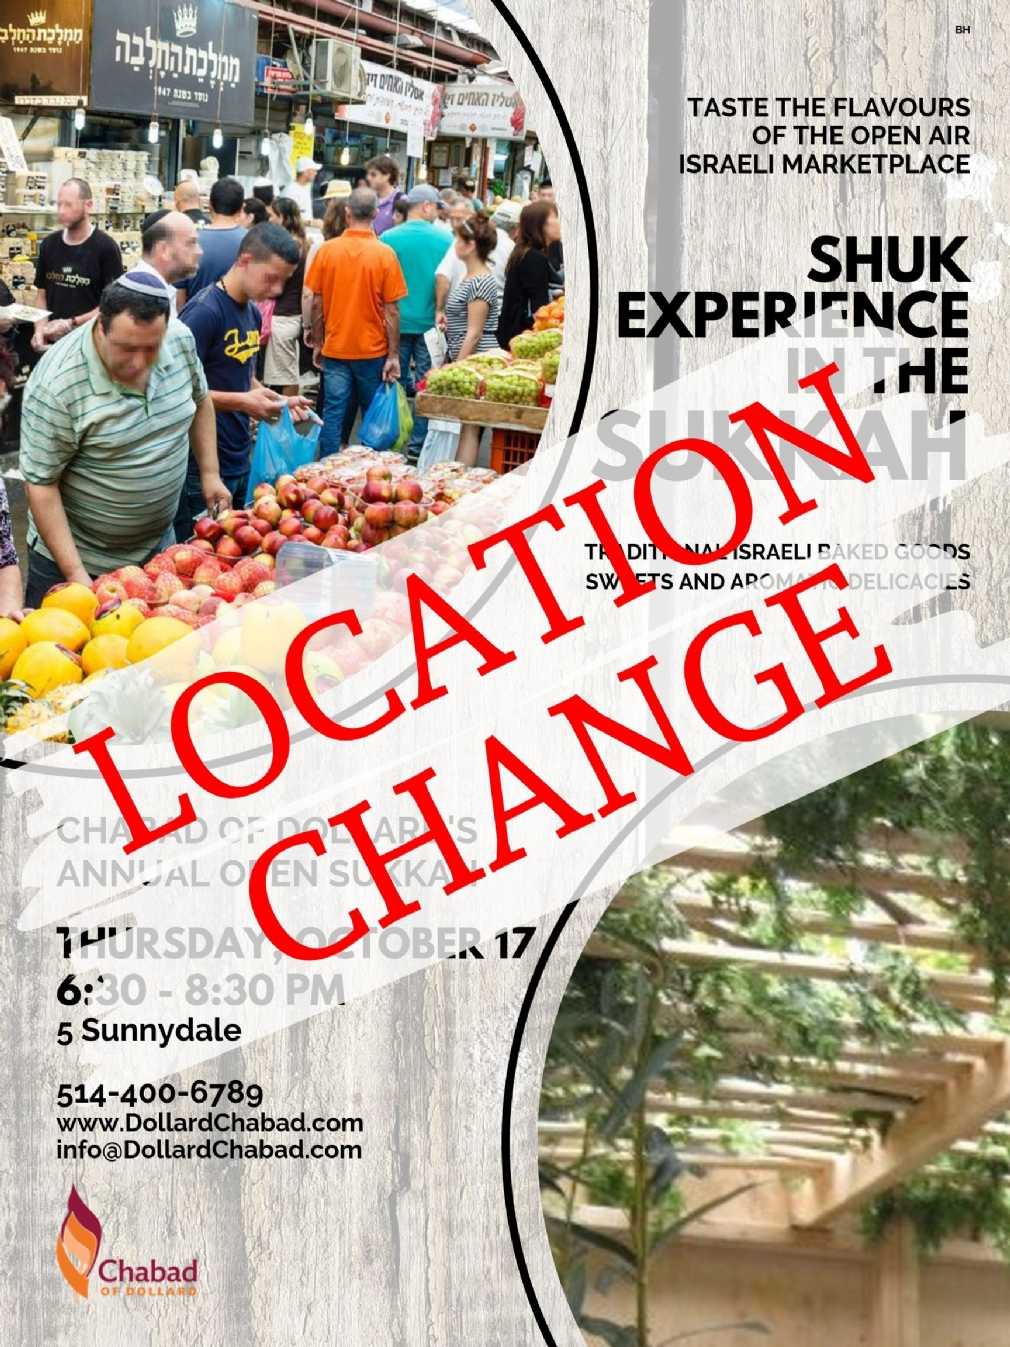 Copy of Shuk experience in the.jpg